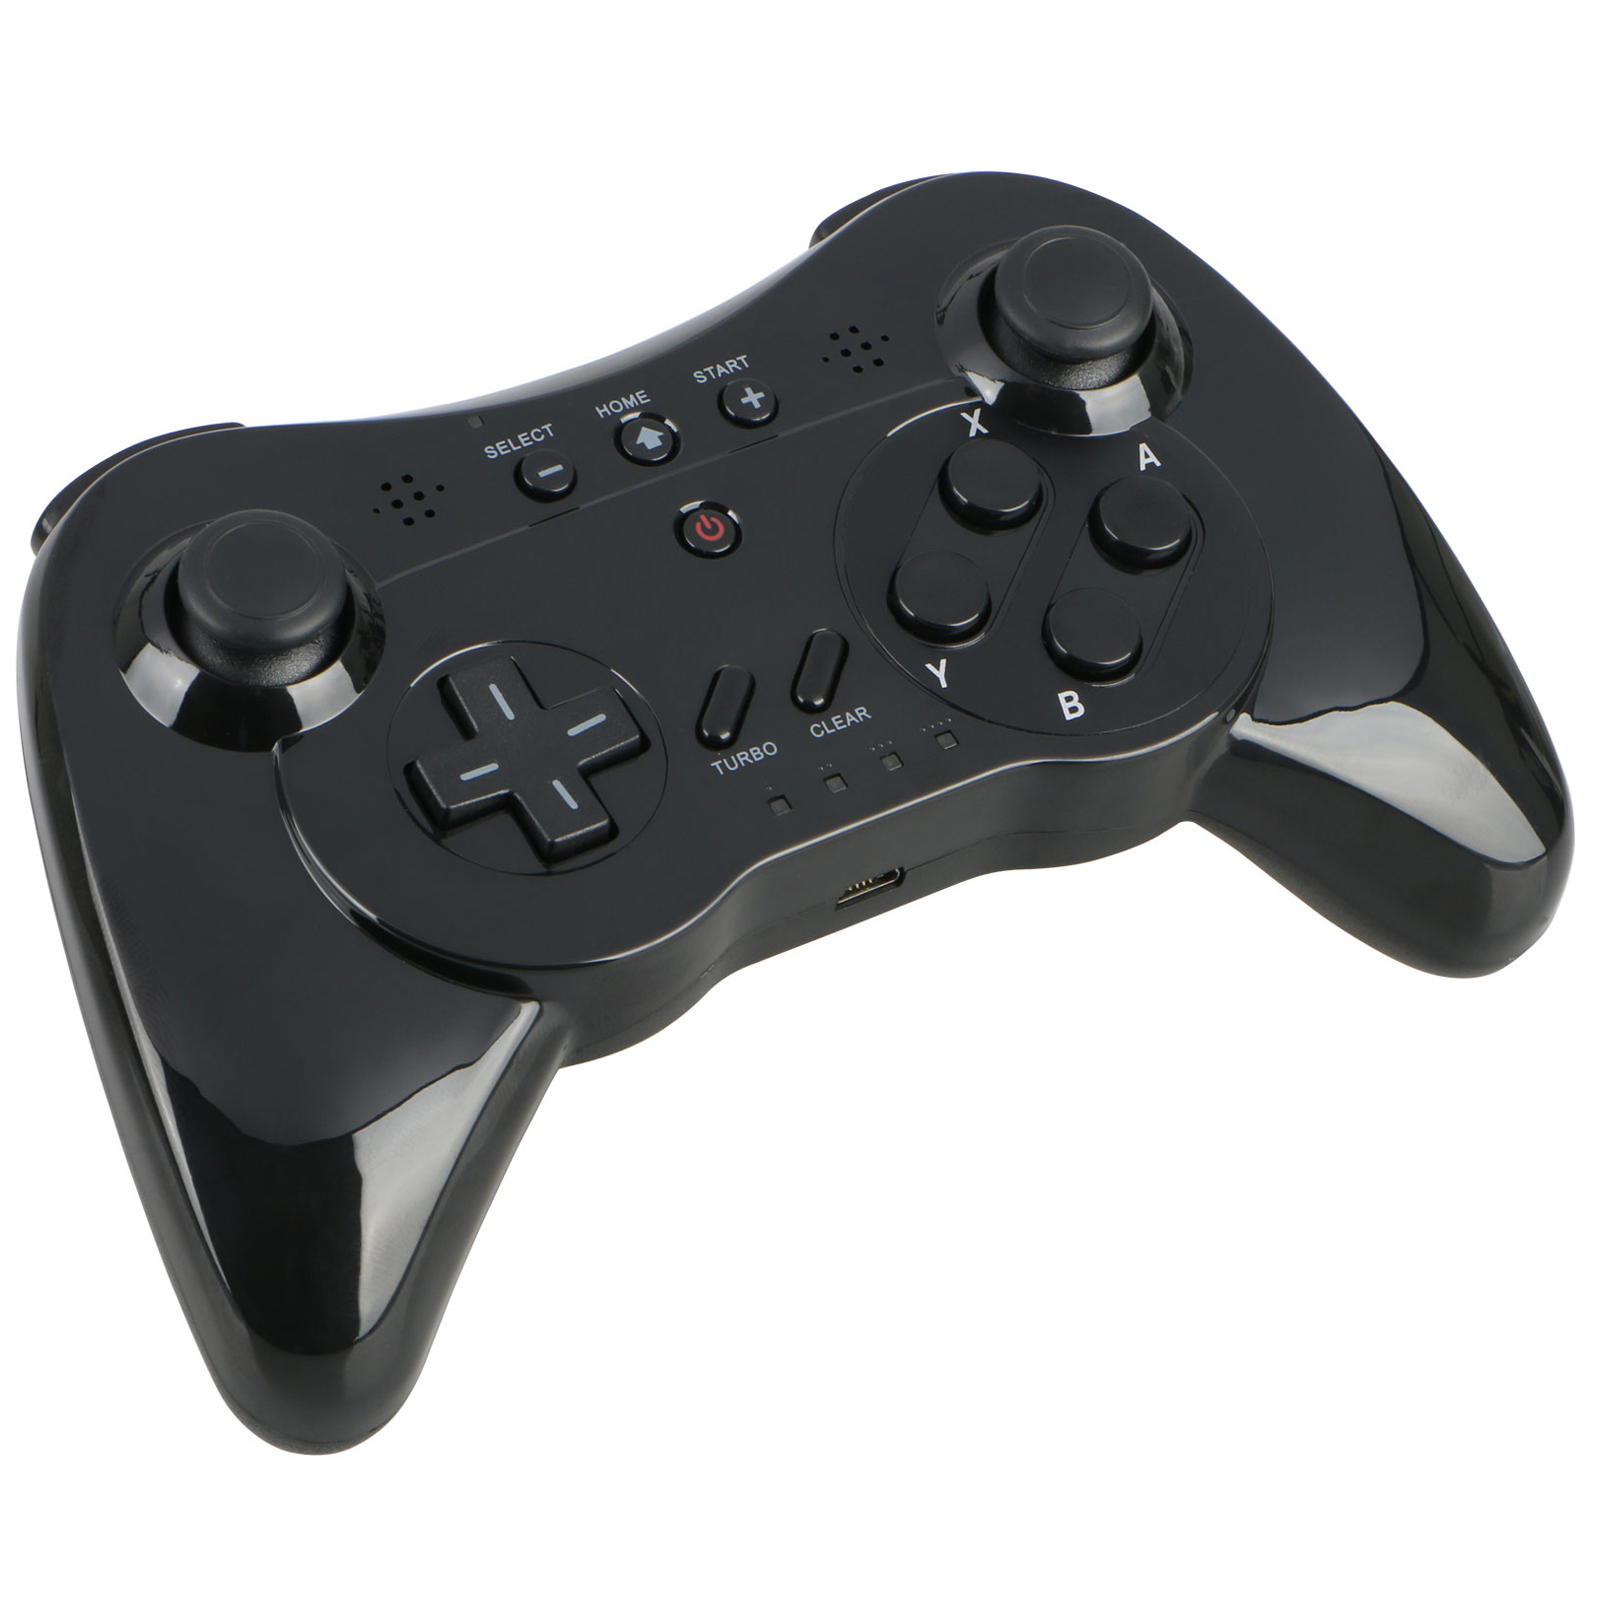 Wireless Game Controller,Classic Rechargeable Bluetooth Gamepad Joypad Remote for Nintendo Wii U